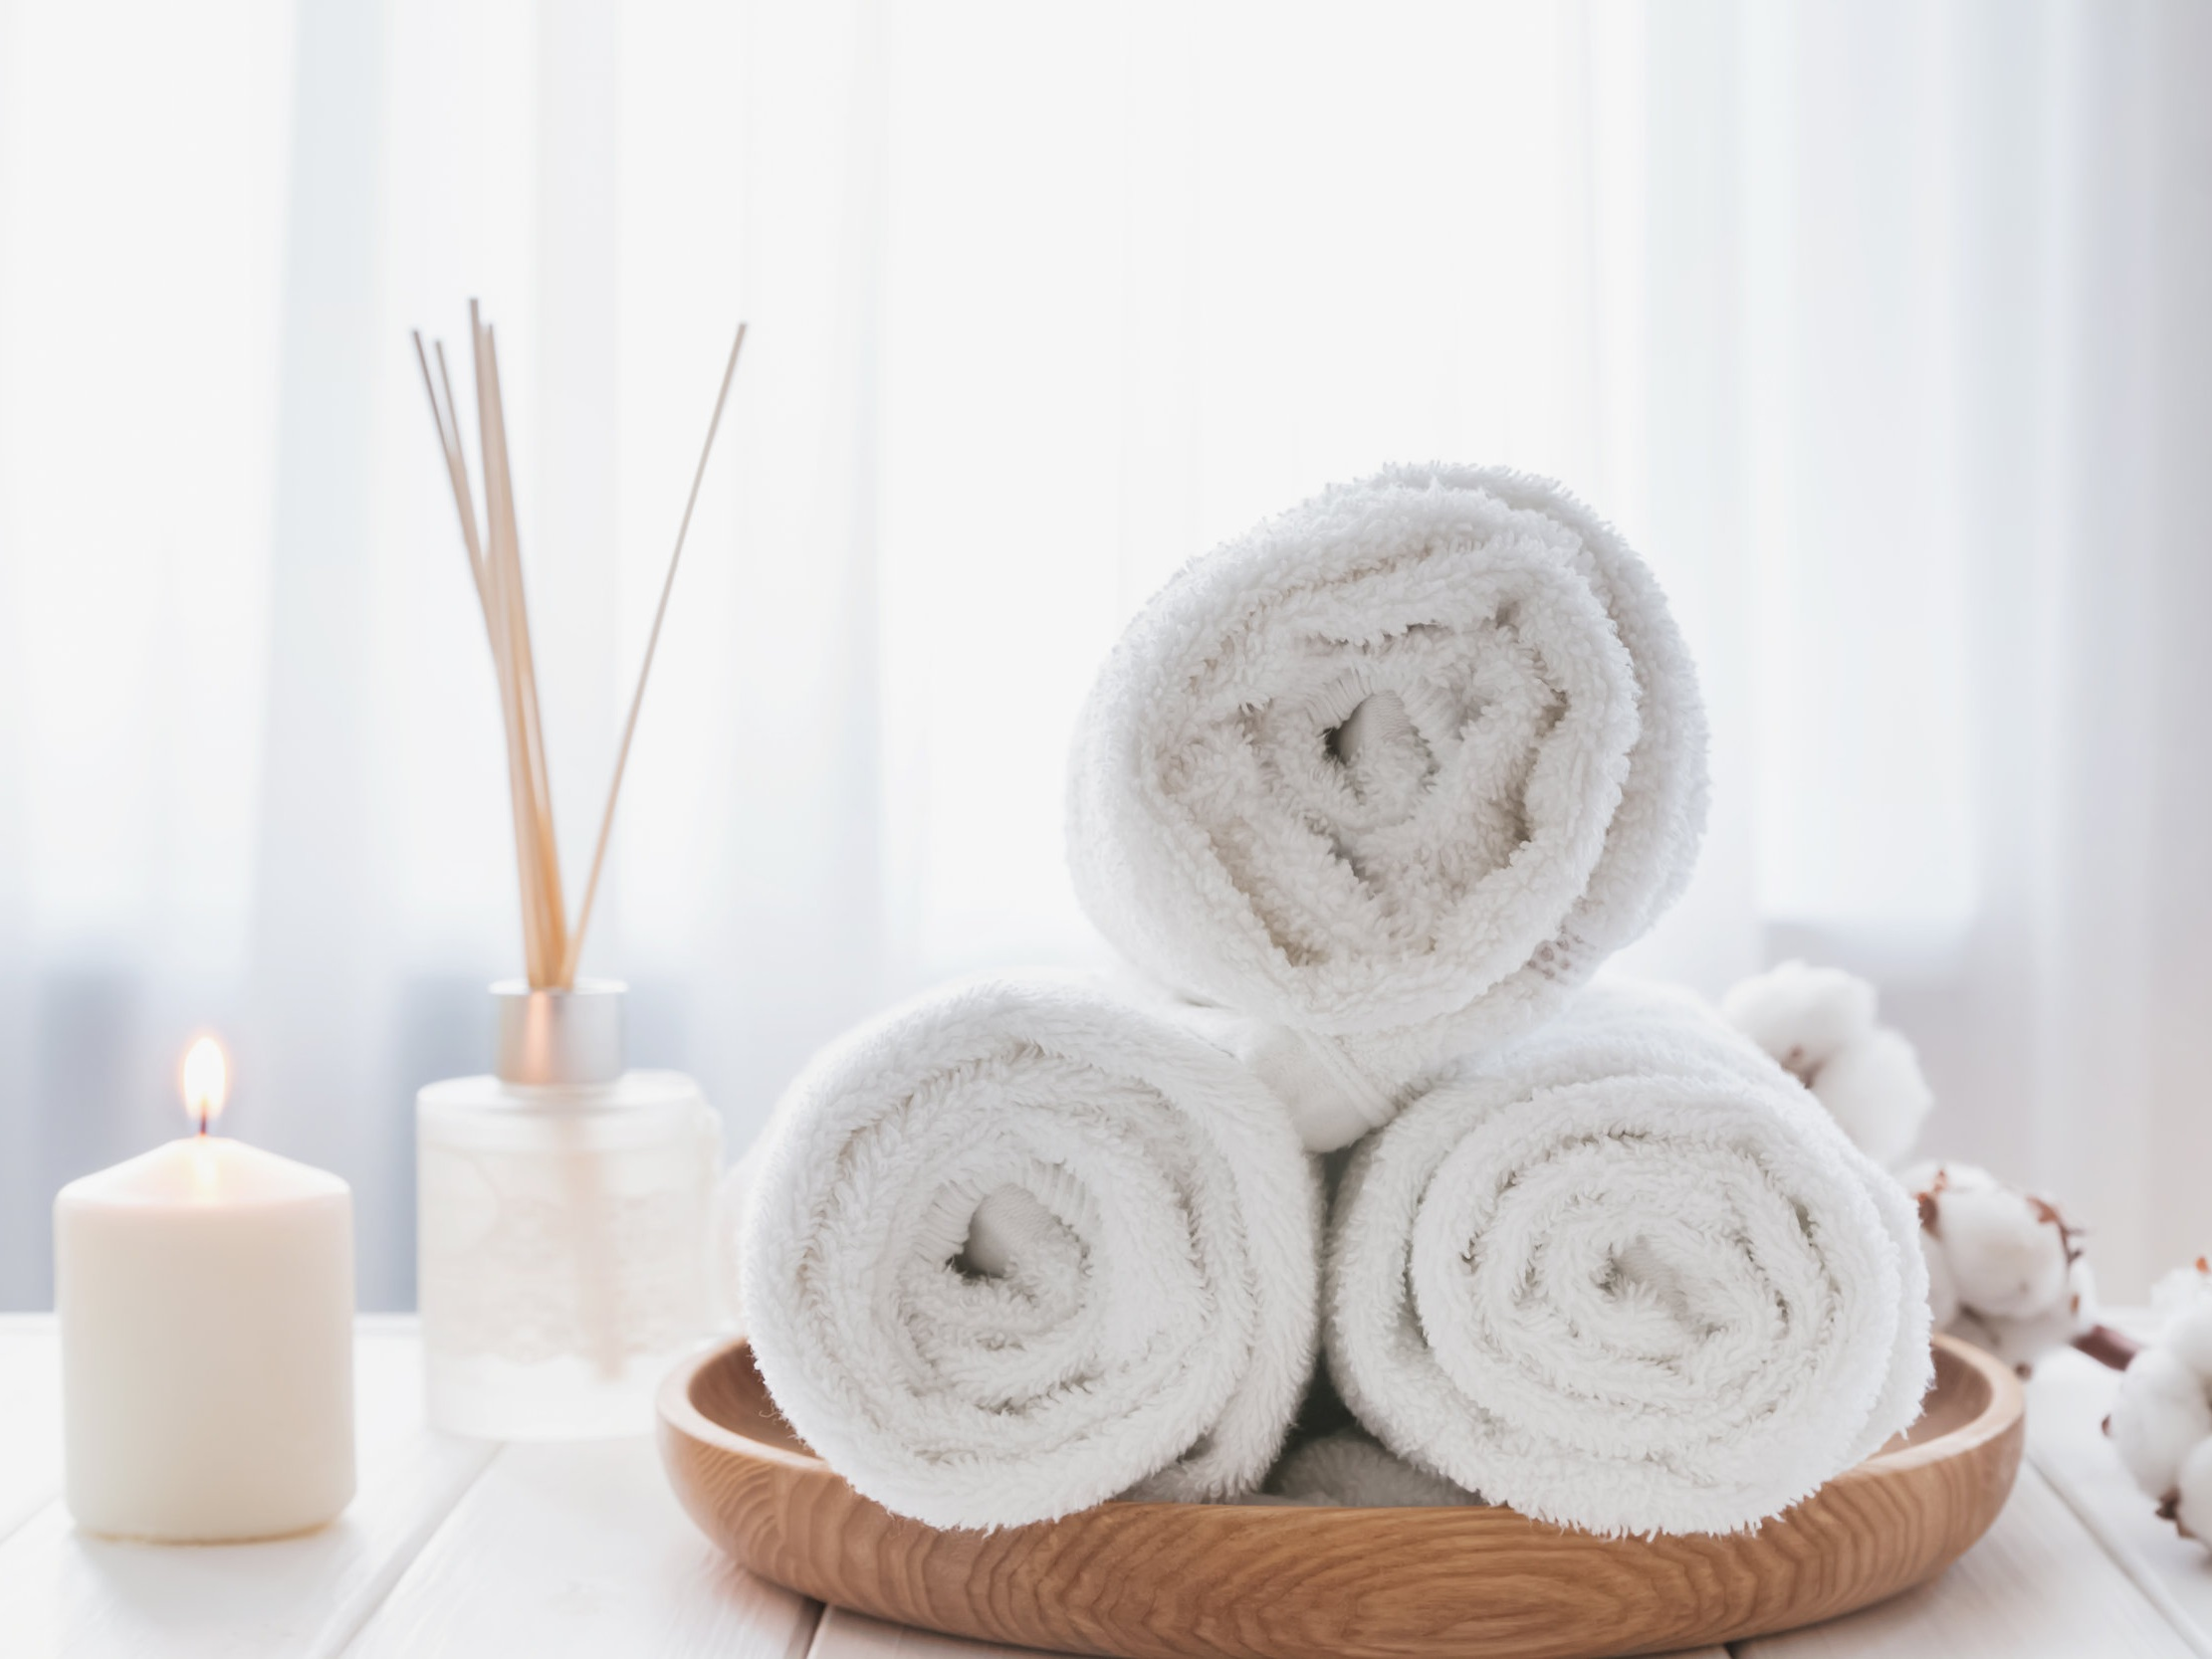 Canva - Clean white towels on the wooden tray, candle and aroma diffuser..jpg